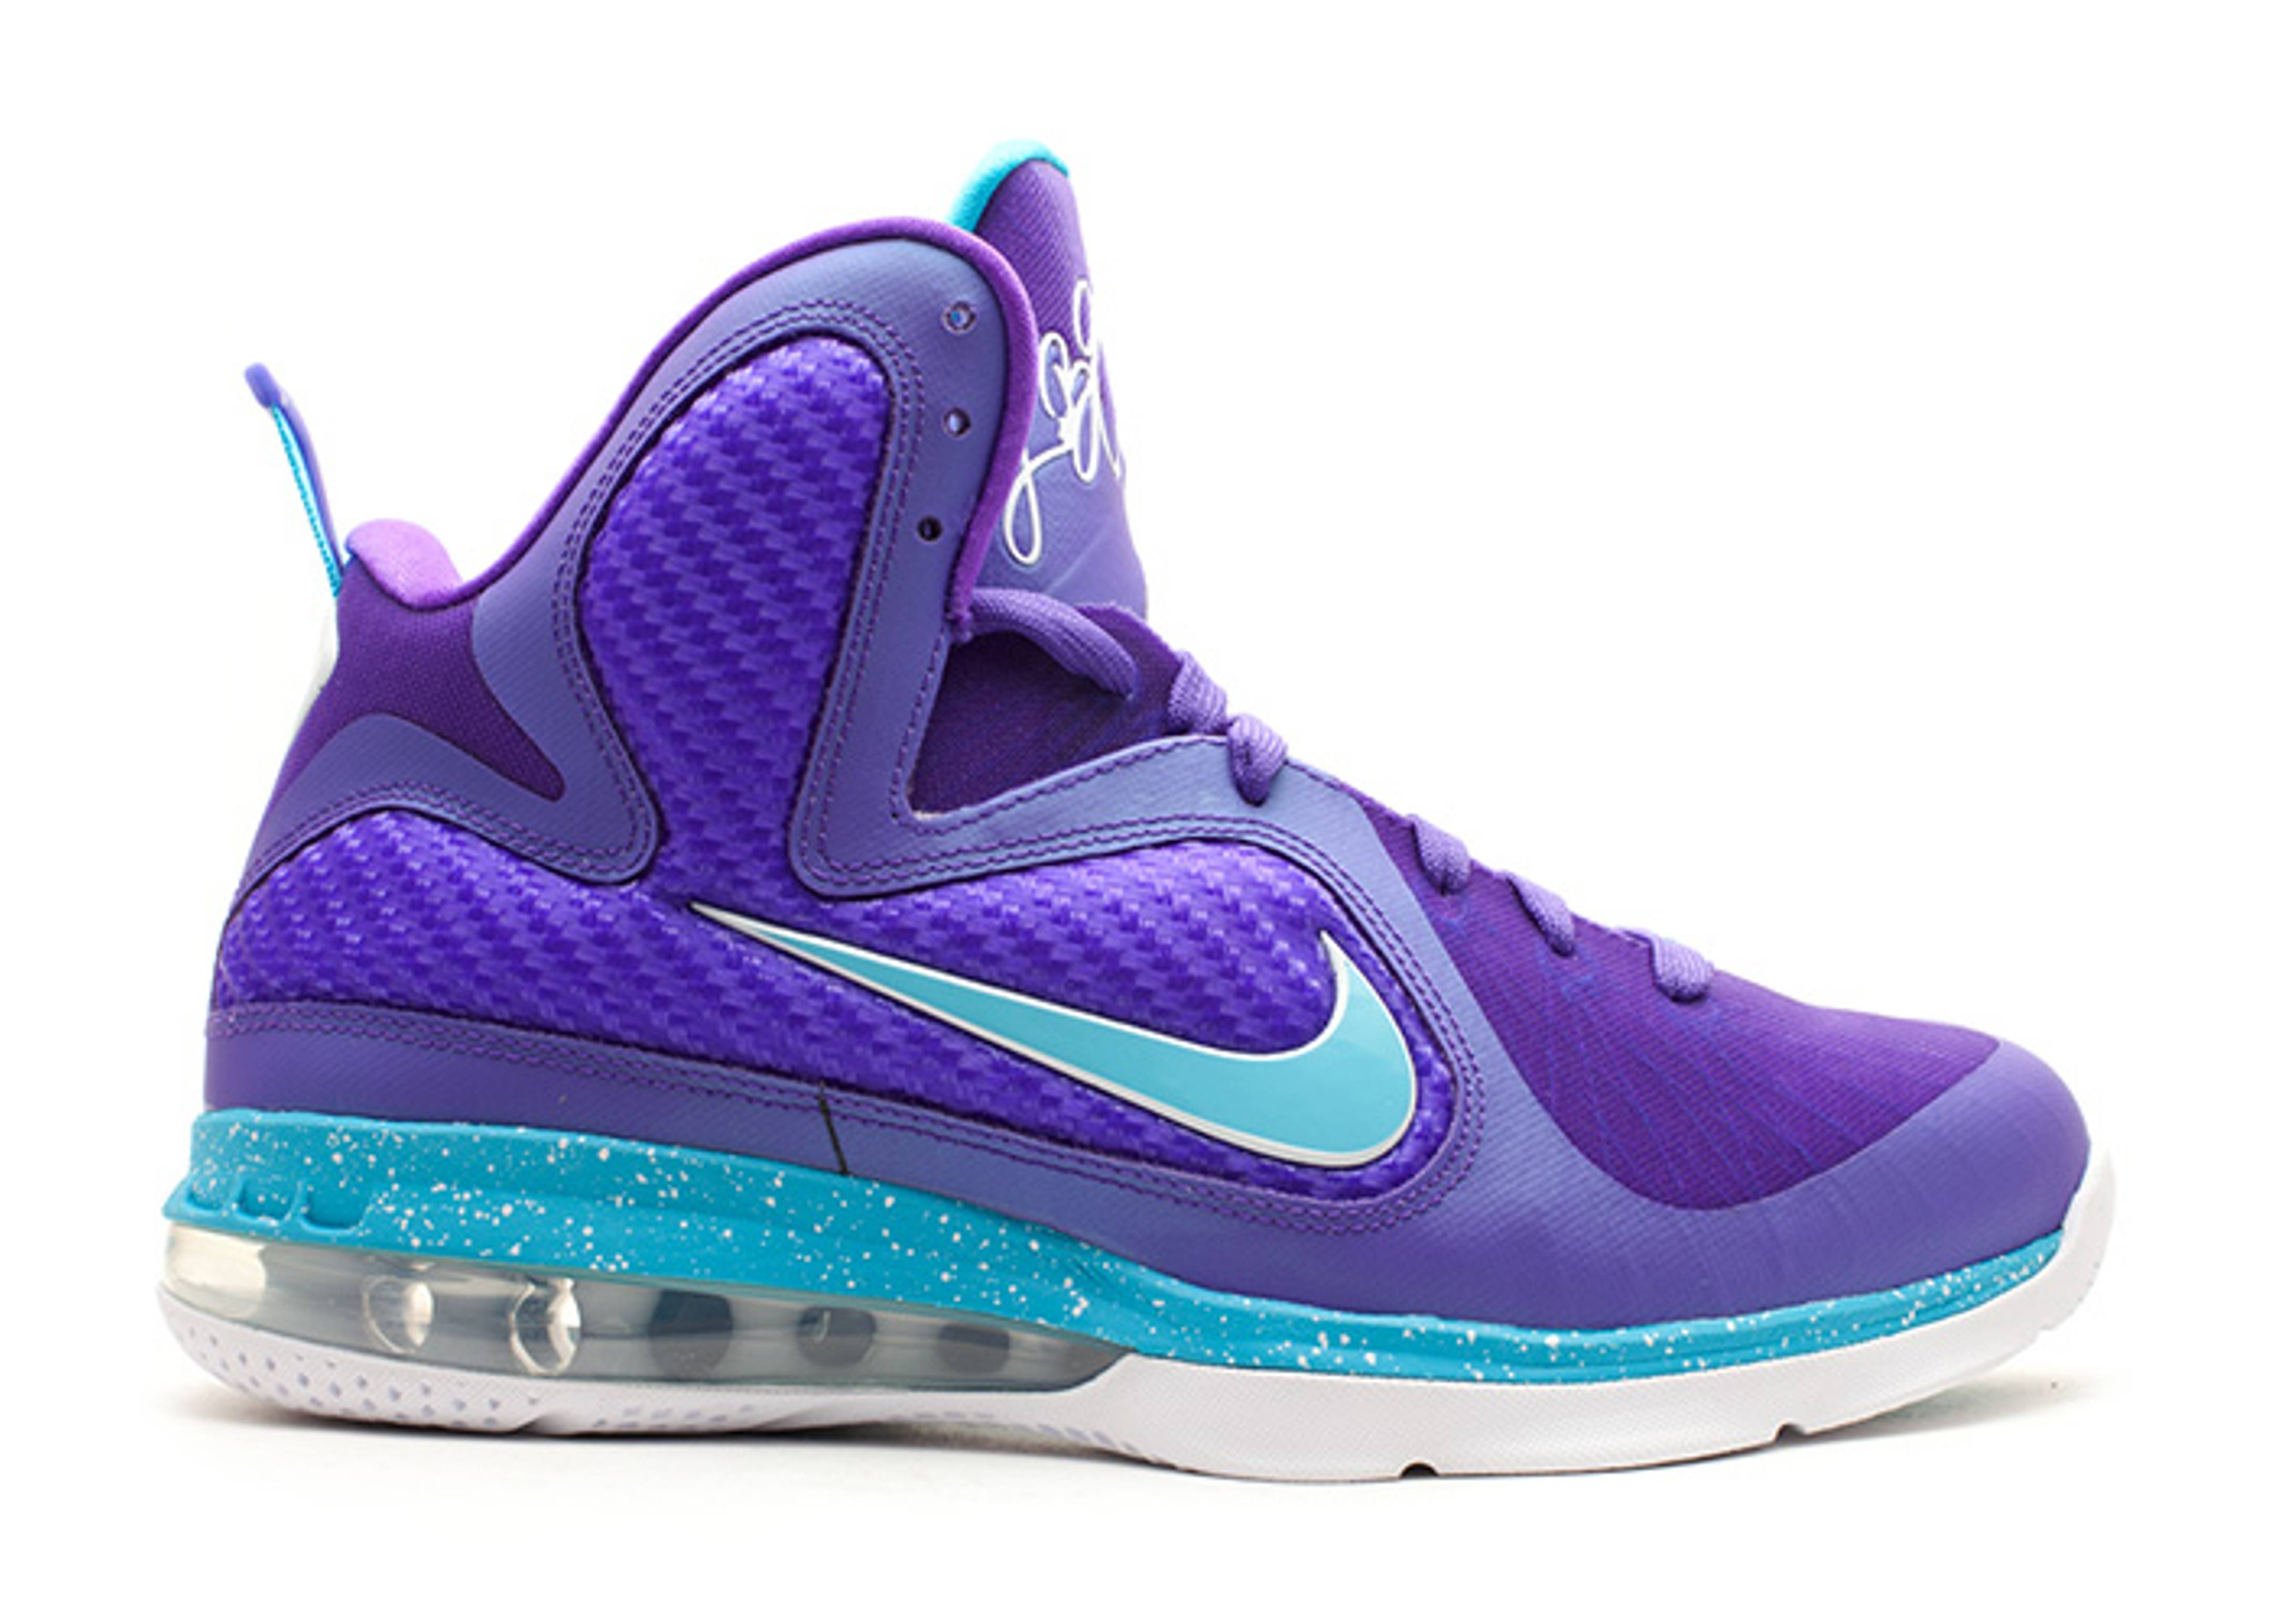 Nike Purple And Teal Shoes